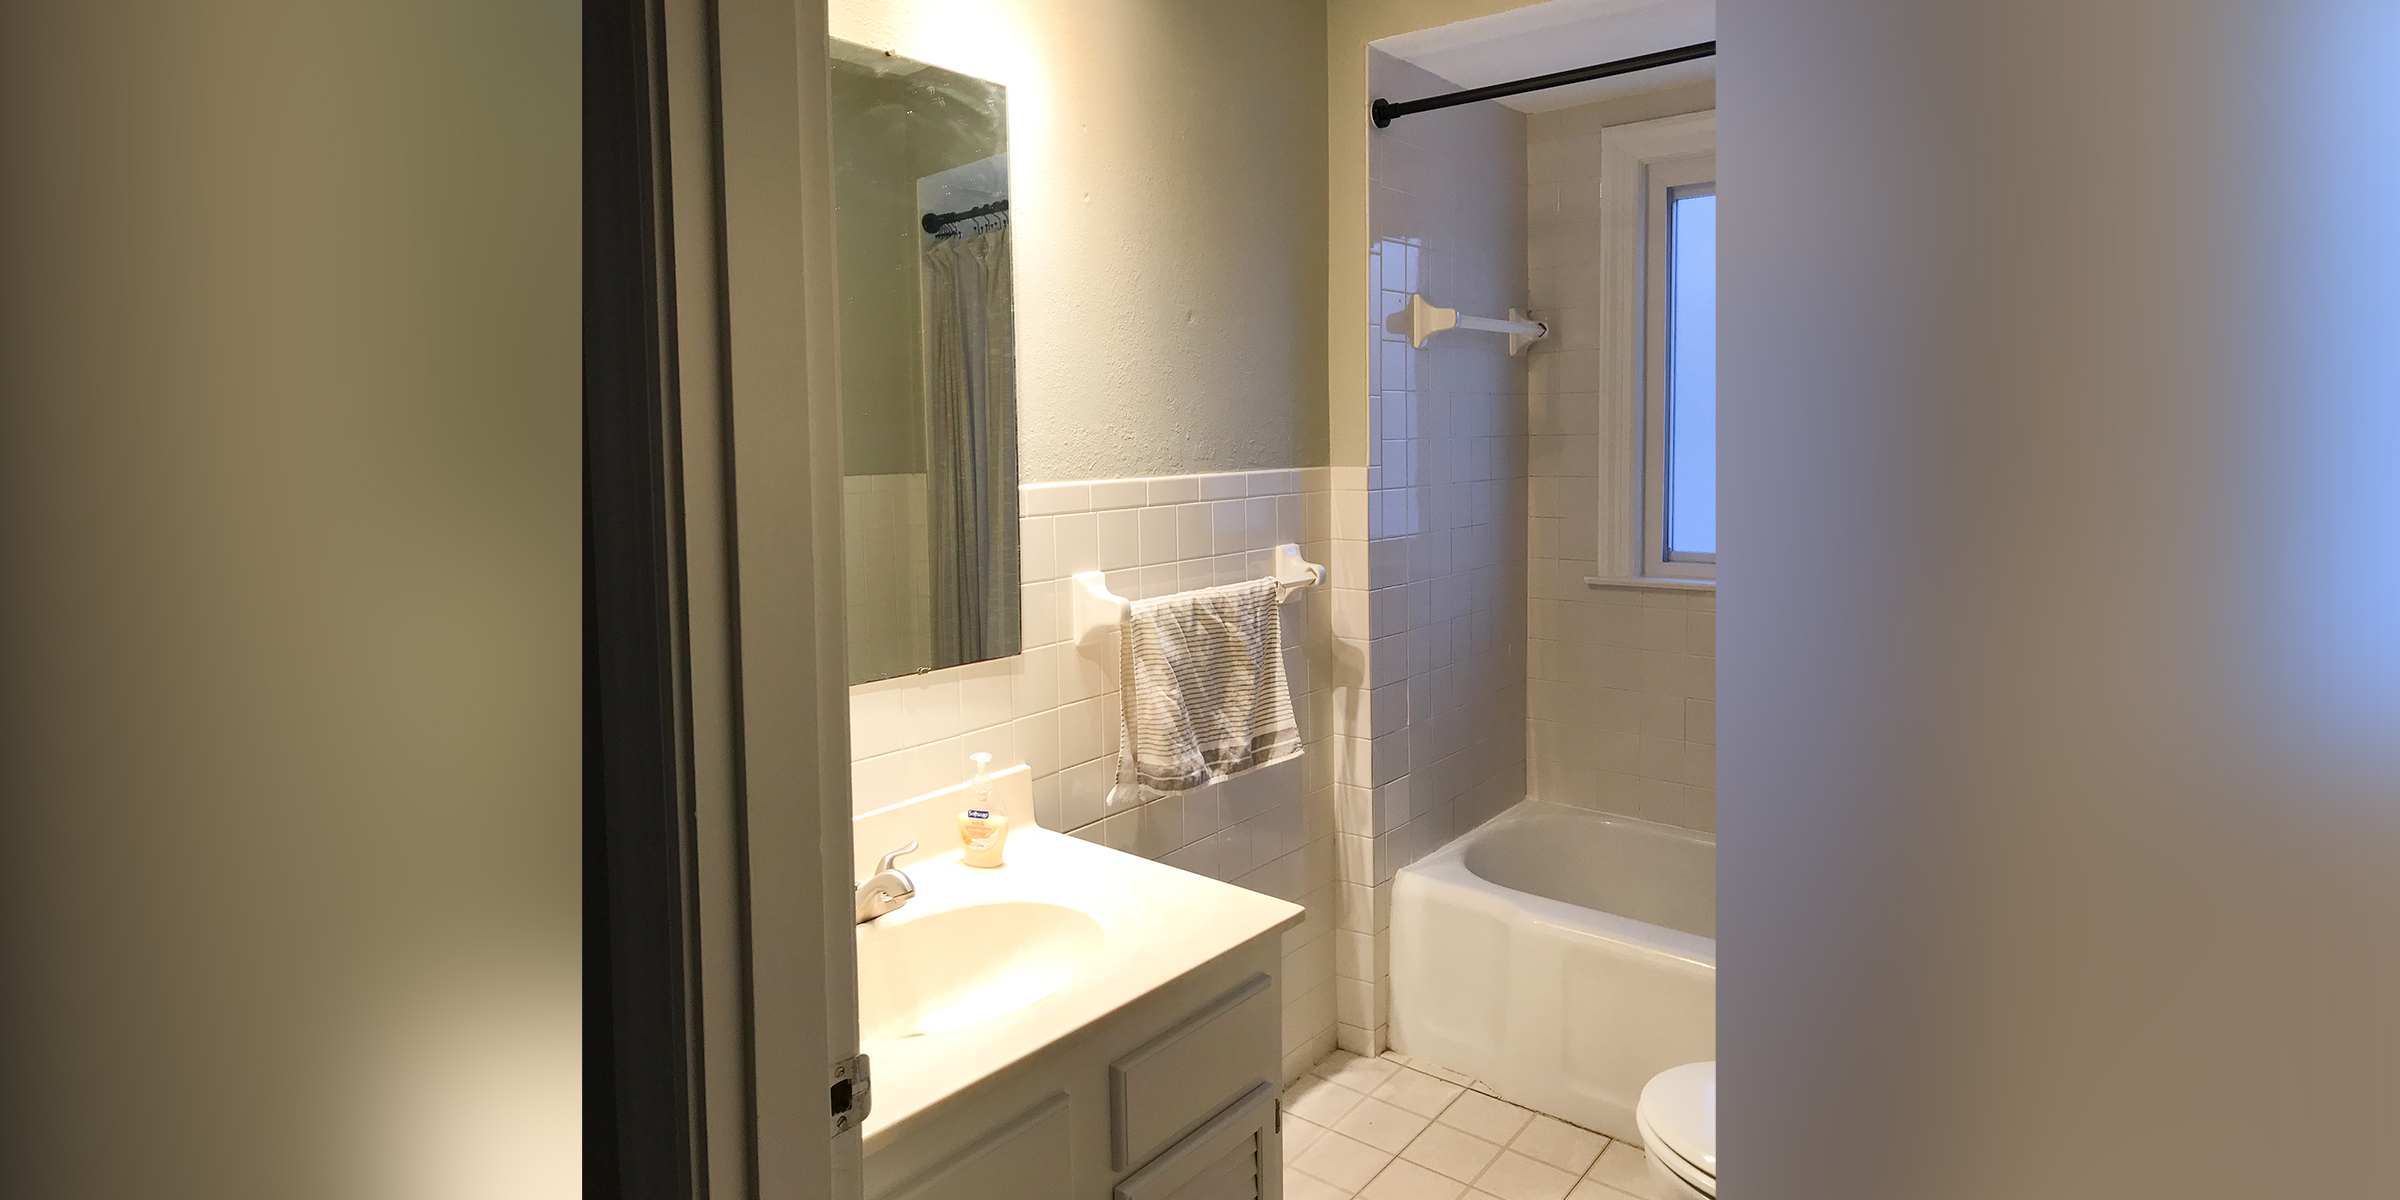 Diy Bathroom Makeover For 500 Uses Shiplap And L Stick Tiles